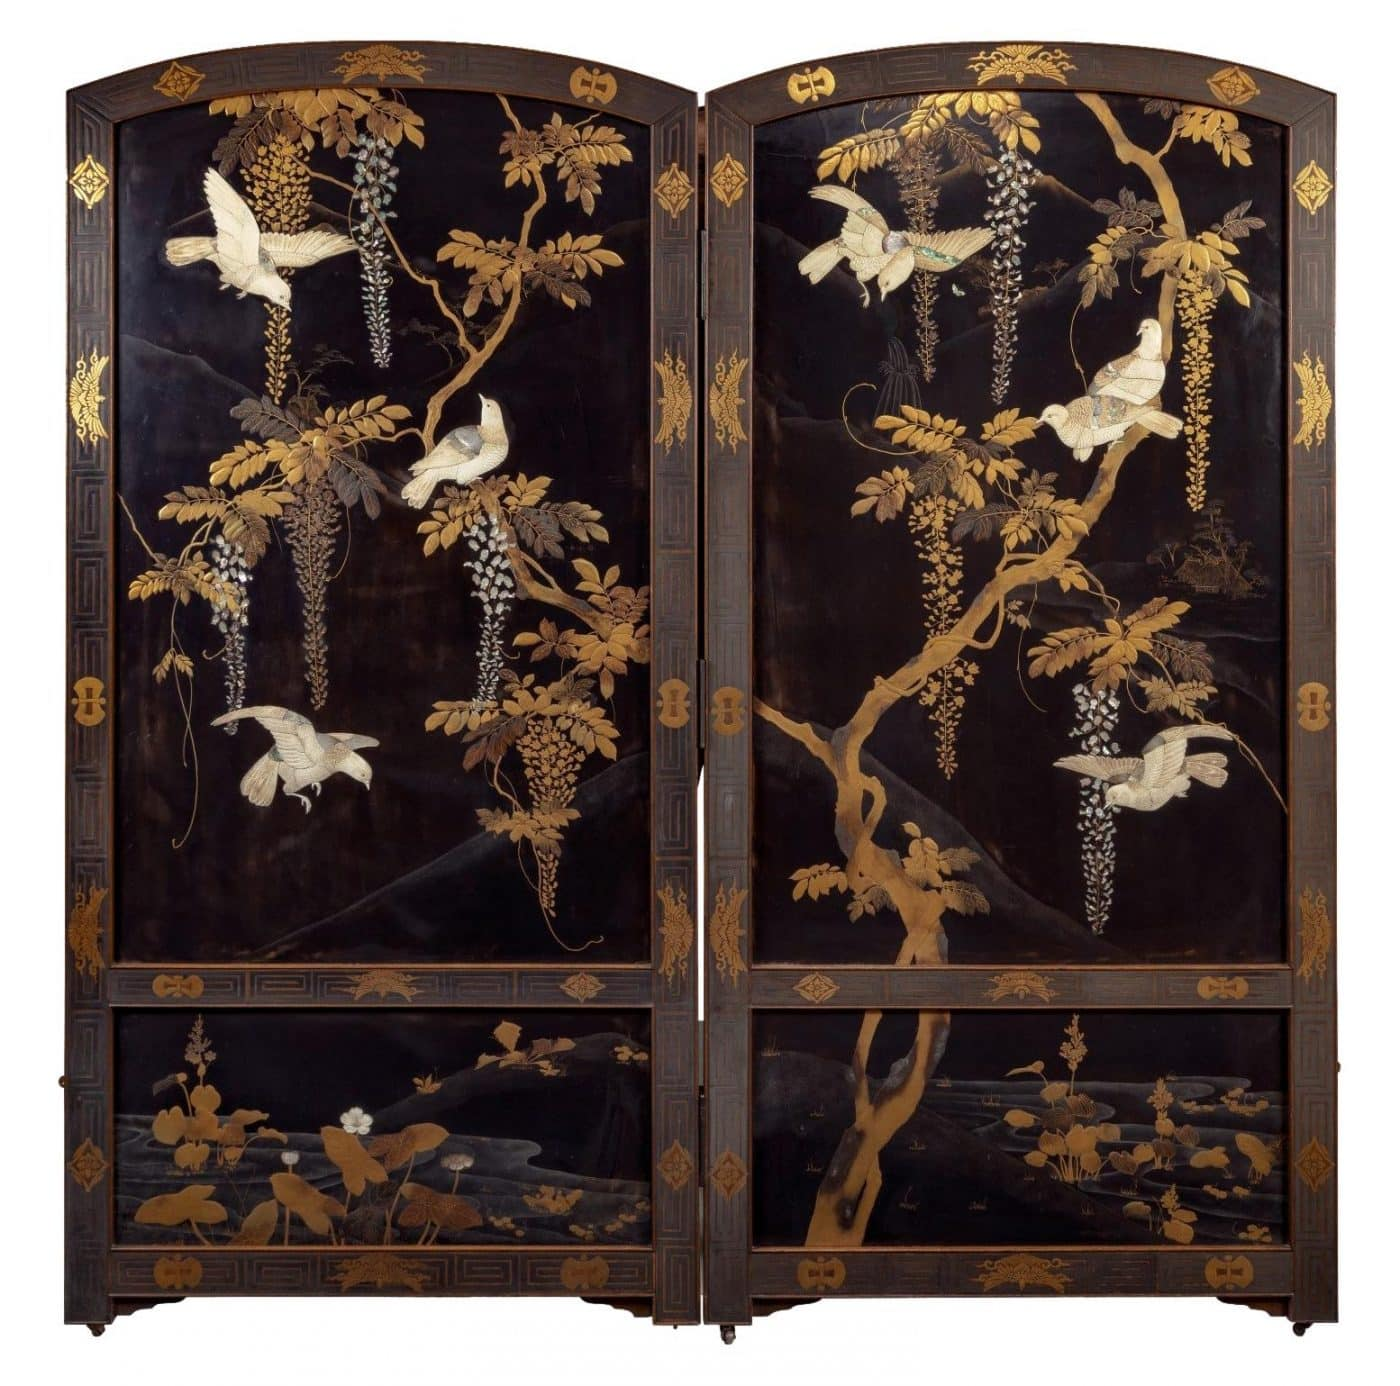 Japanese lacquer panel